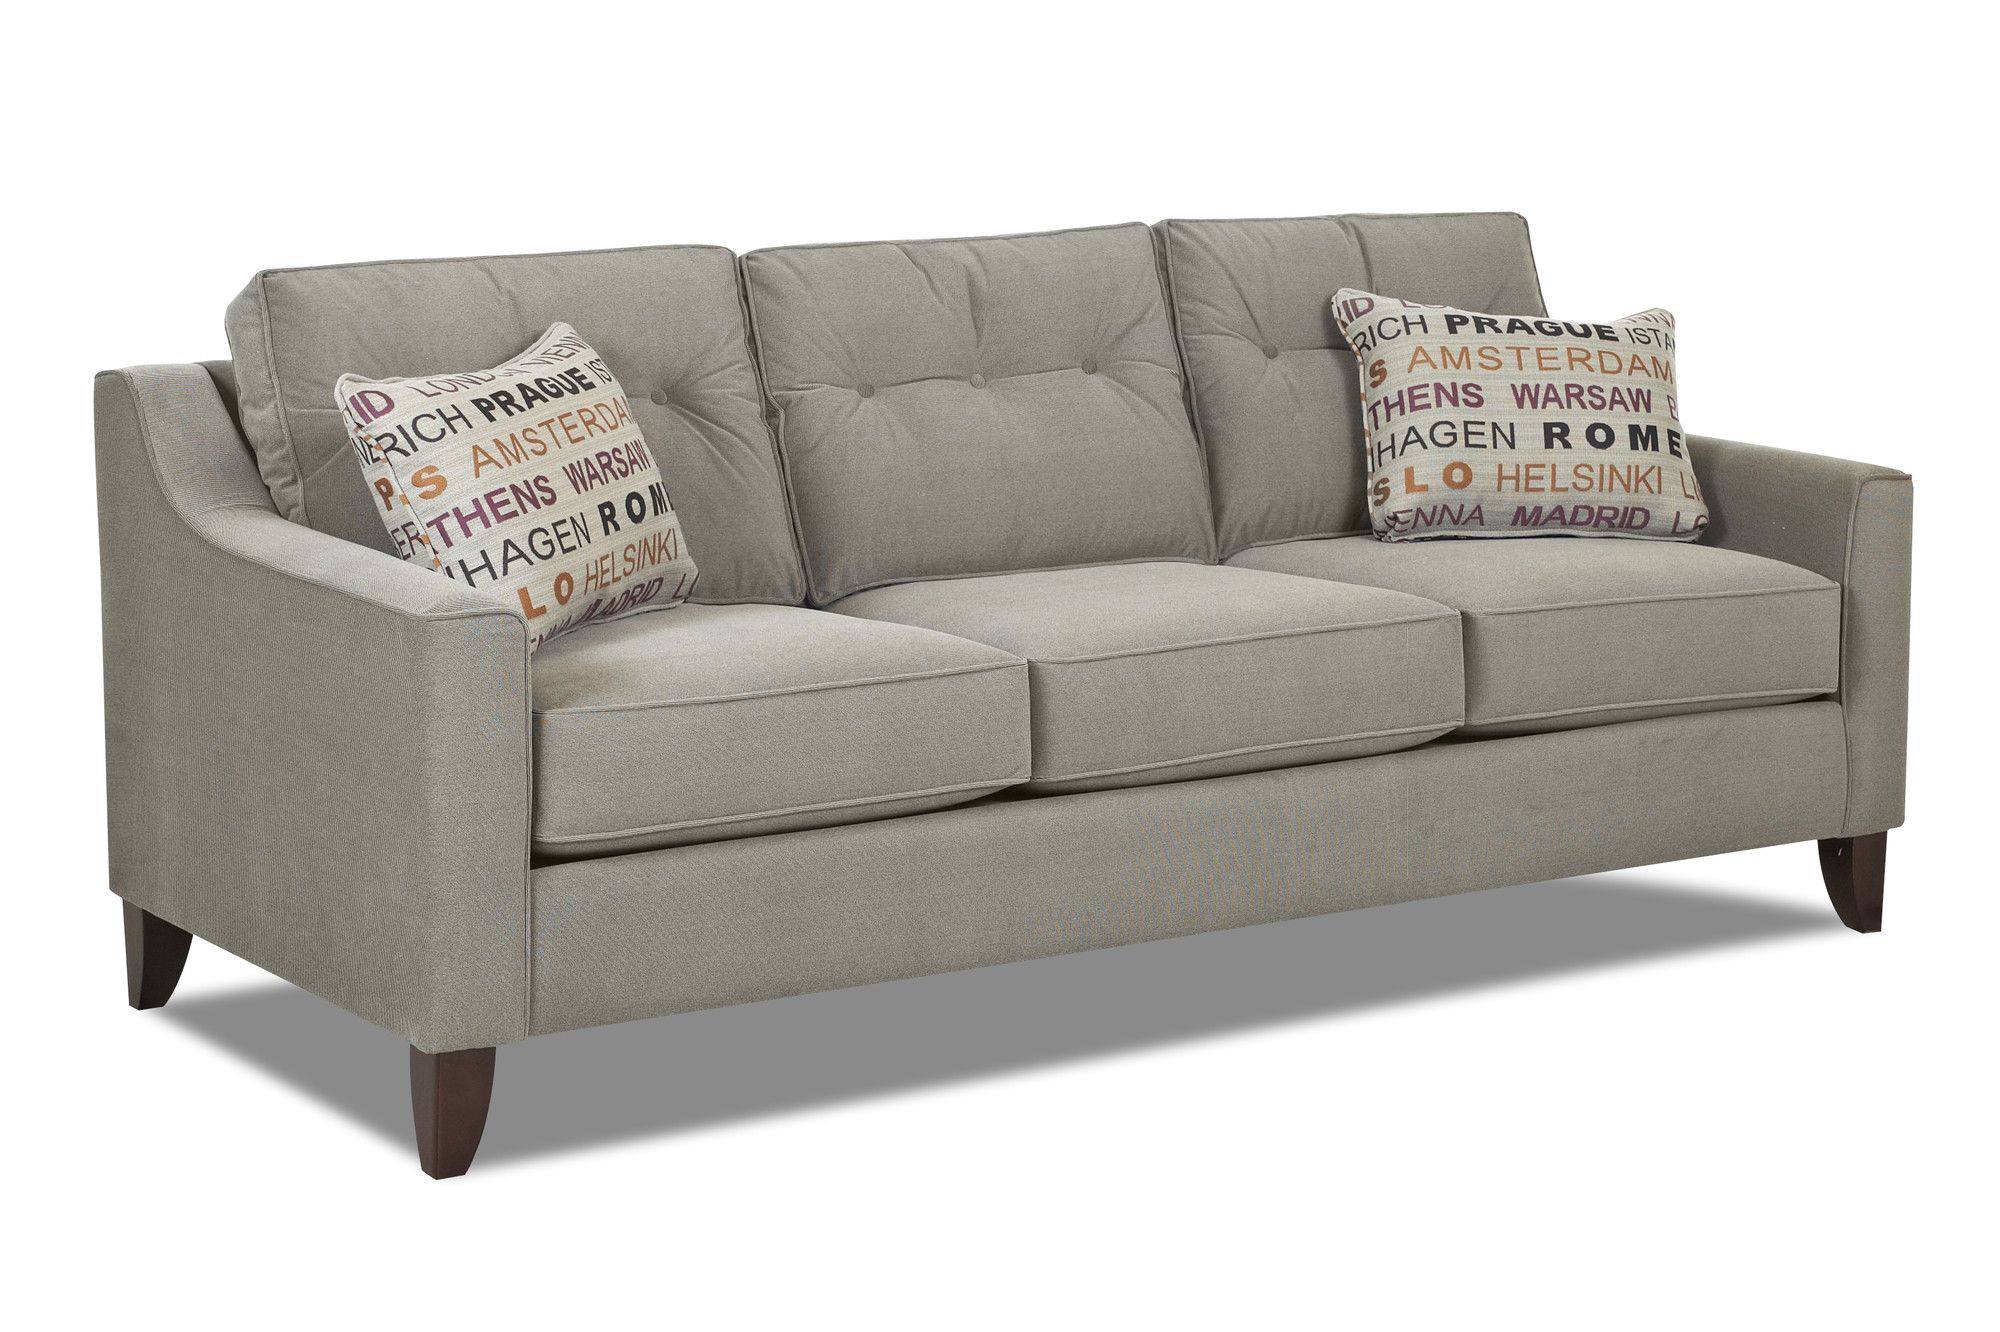 Klaussner Furniture Audrina Sofa Reviews Wayfair M D Sofas